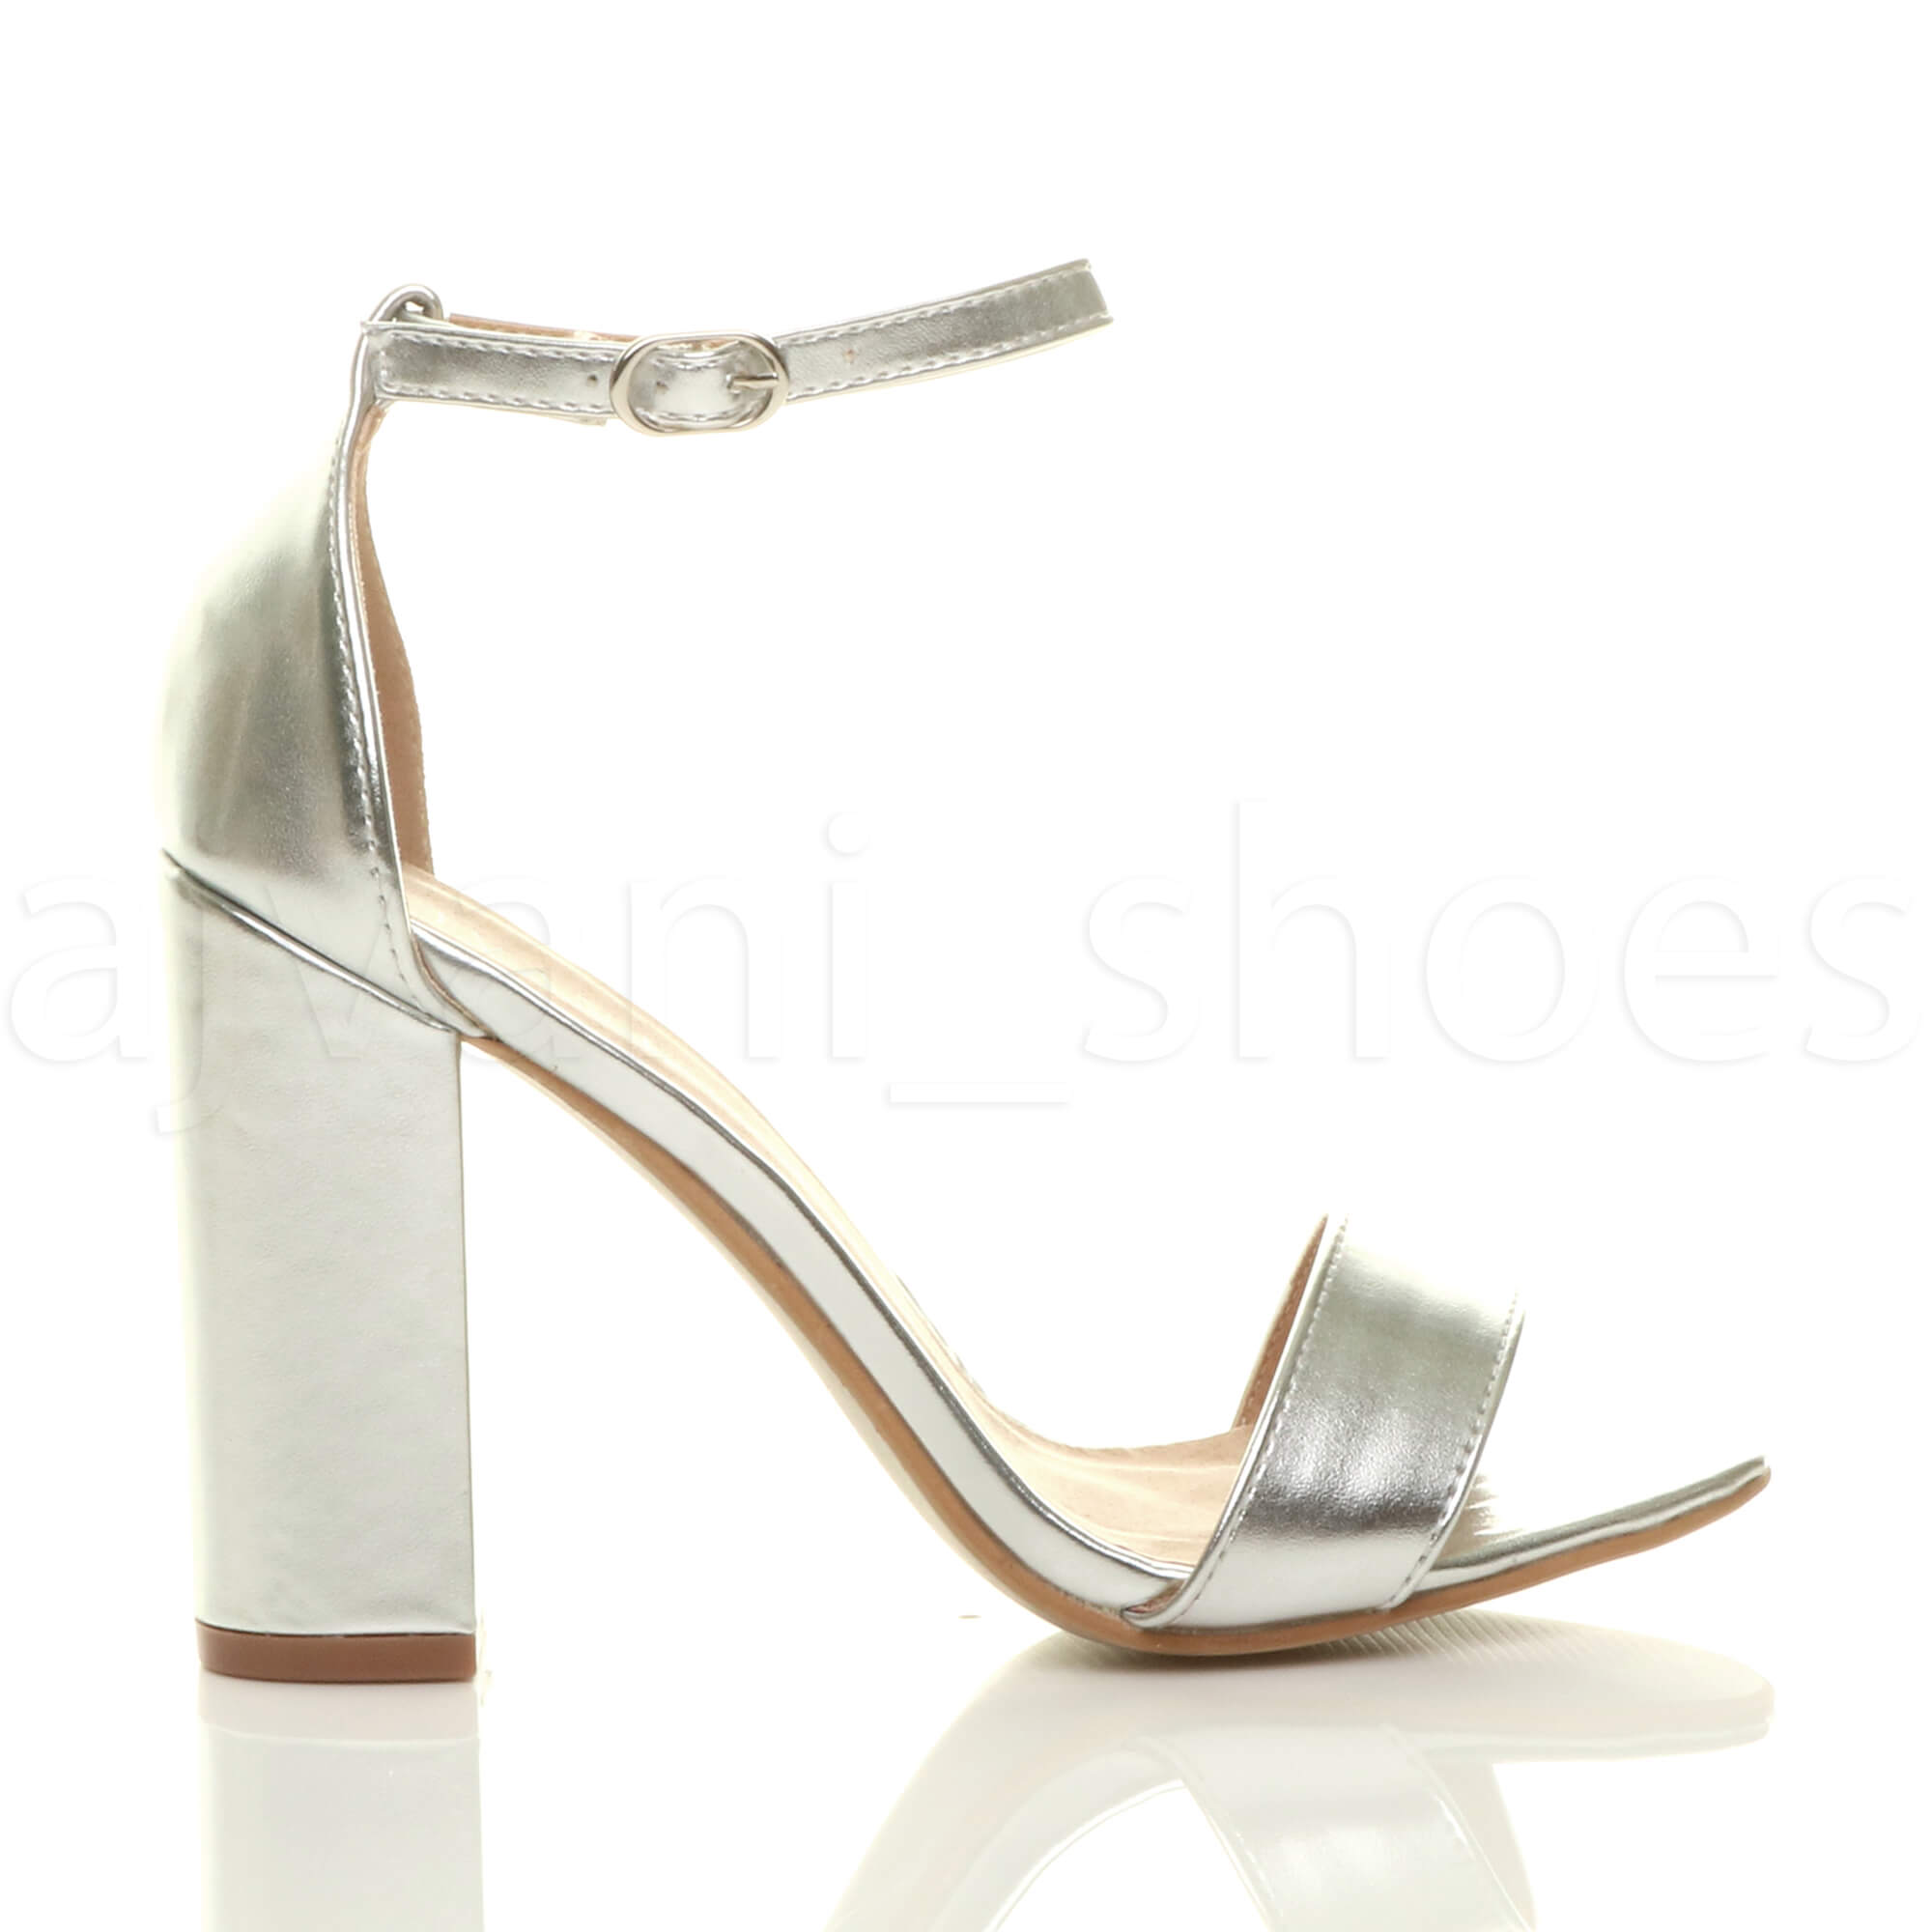 WOMENS-LADIES-BLOCK-HIGH-HEEL-ANKLE-STRAP-PEEP-TOE-STRAPPY-SANDALS-SHOES-SIZE thumbnail 147